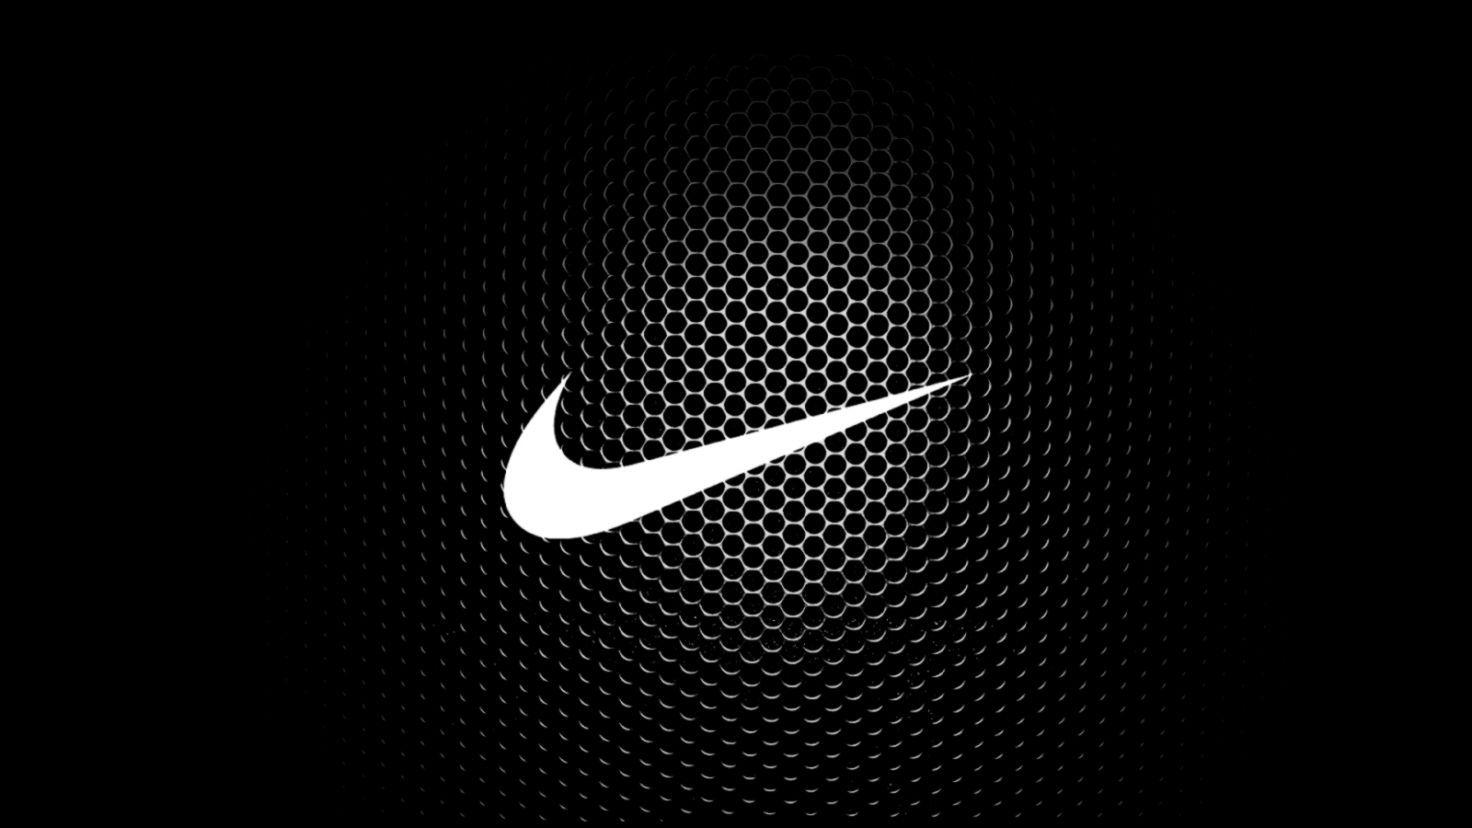 Nike Wallpaper Just Do It 1920 1200 Just Do It Wallpaper 47 Wallpapers Adorable Wallpapers Nike Logo Wallpapers Nike Wallpaper Nike Logo